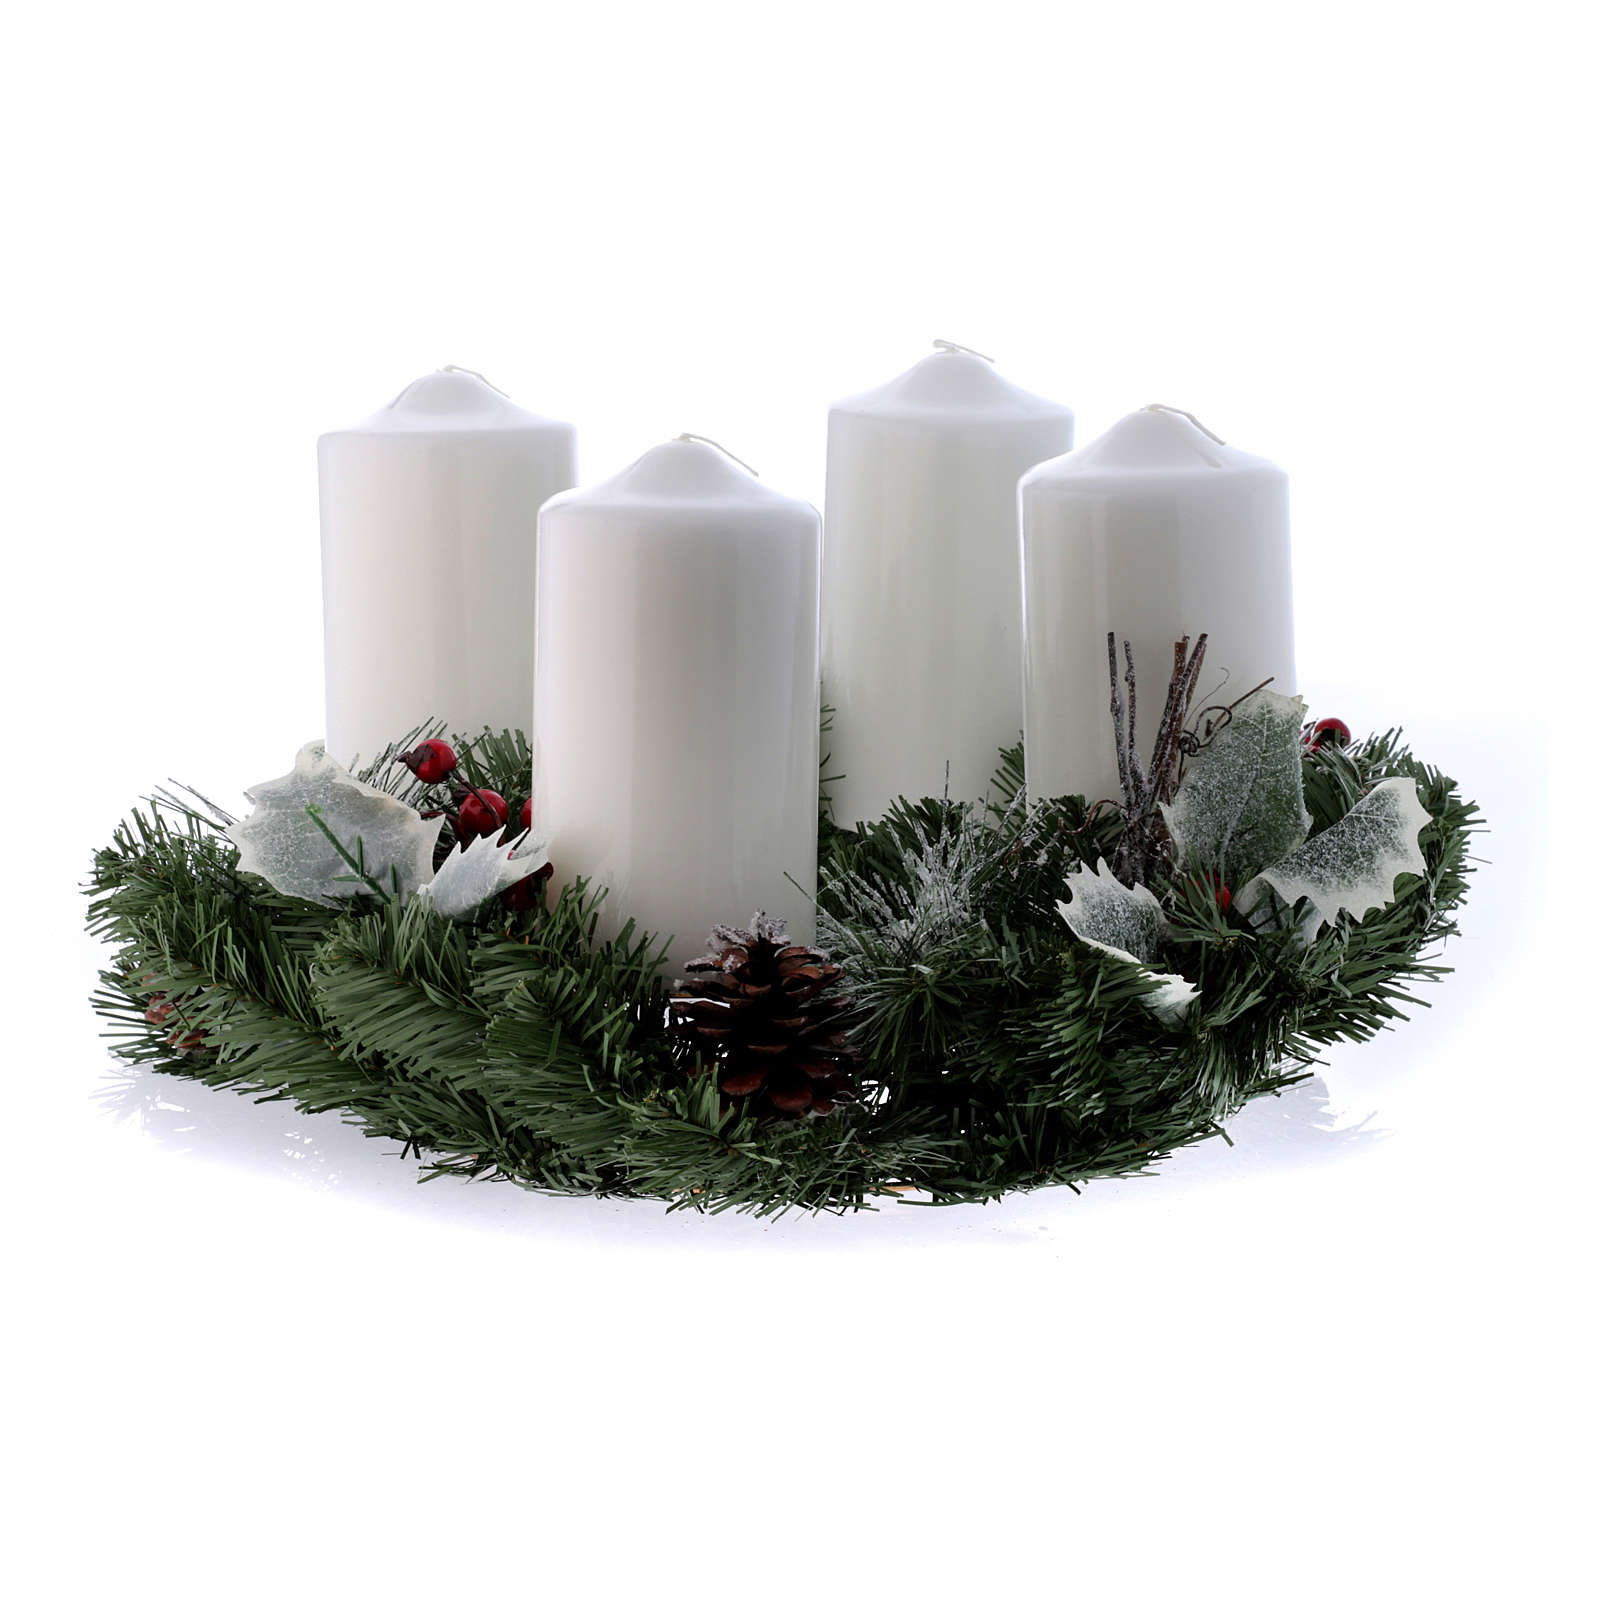 Advent set with wreath and shiny candles 15x8 cm 3